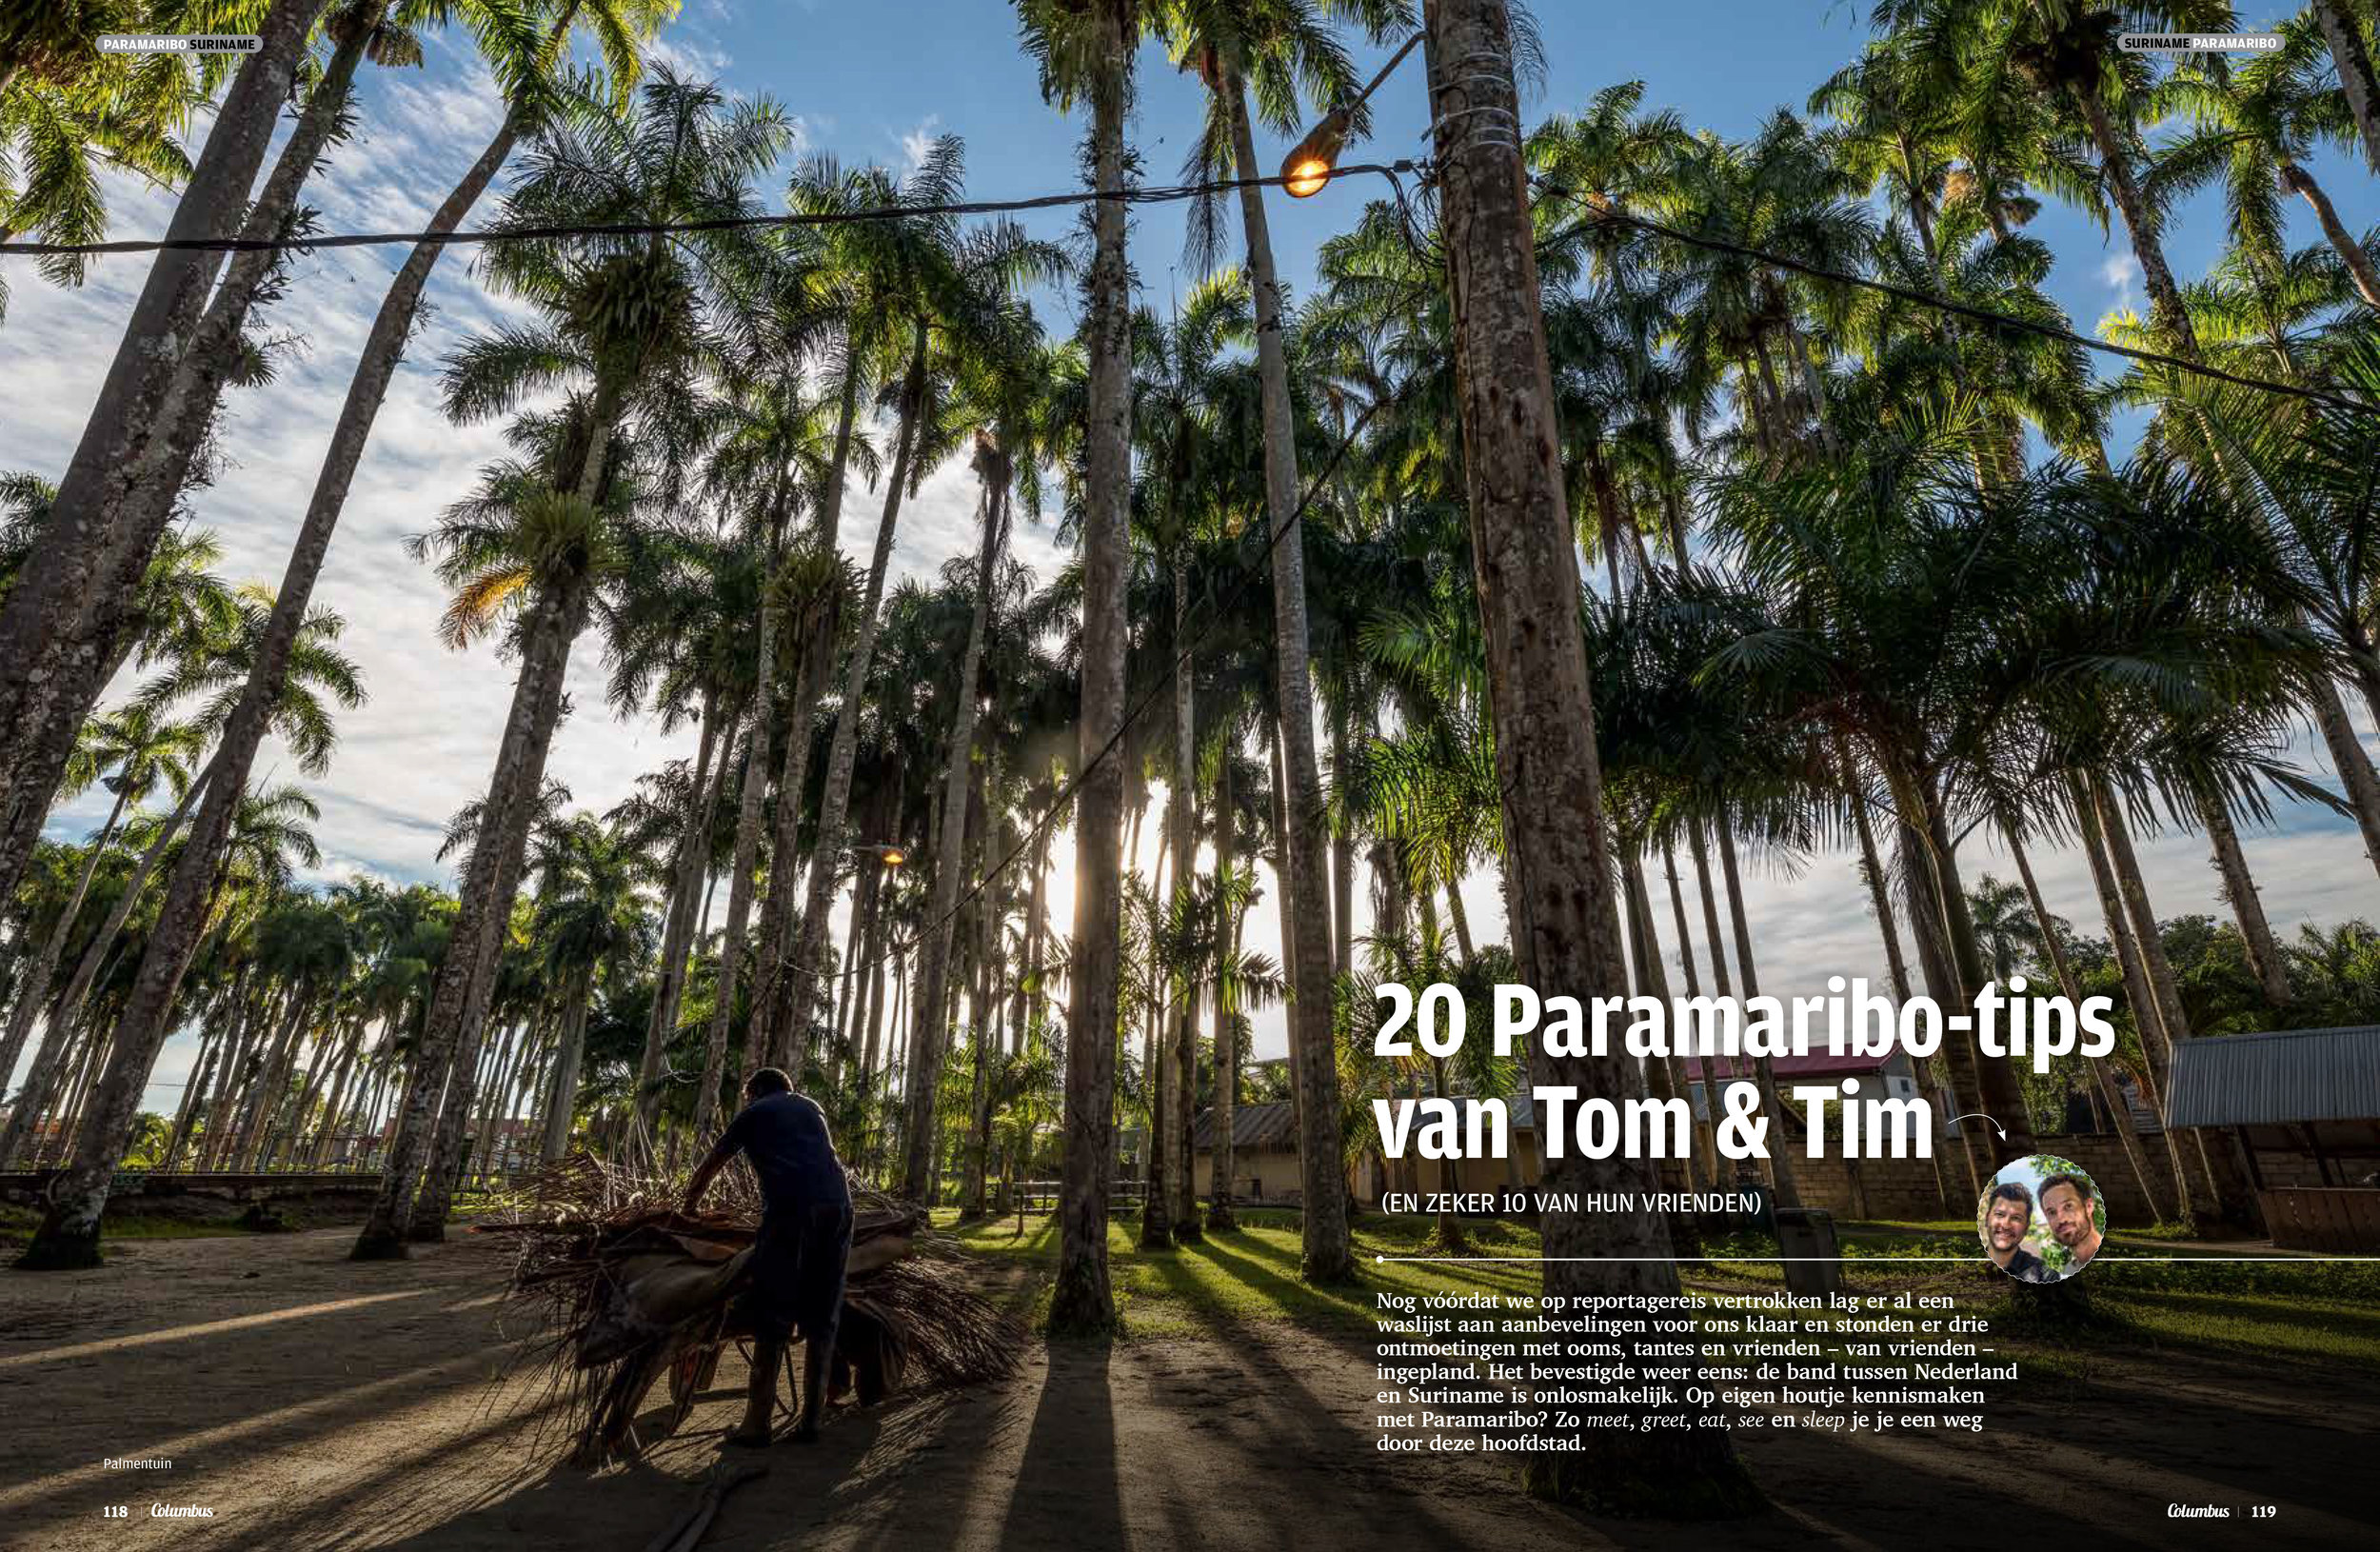 Paramaribo - Together with my journalist buddy Tom Aussems I made a city trip to the capital of Surinam, Paramaribo. We wrote an article about this friendly place and made a top 20 must do's. The article was published in May '18 in Columbus travel edition 73.